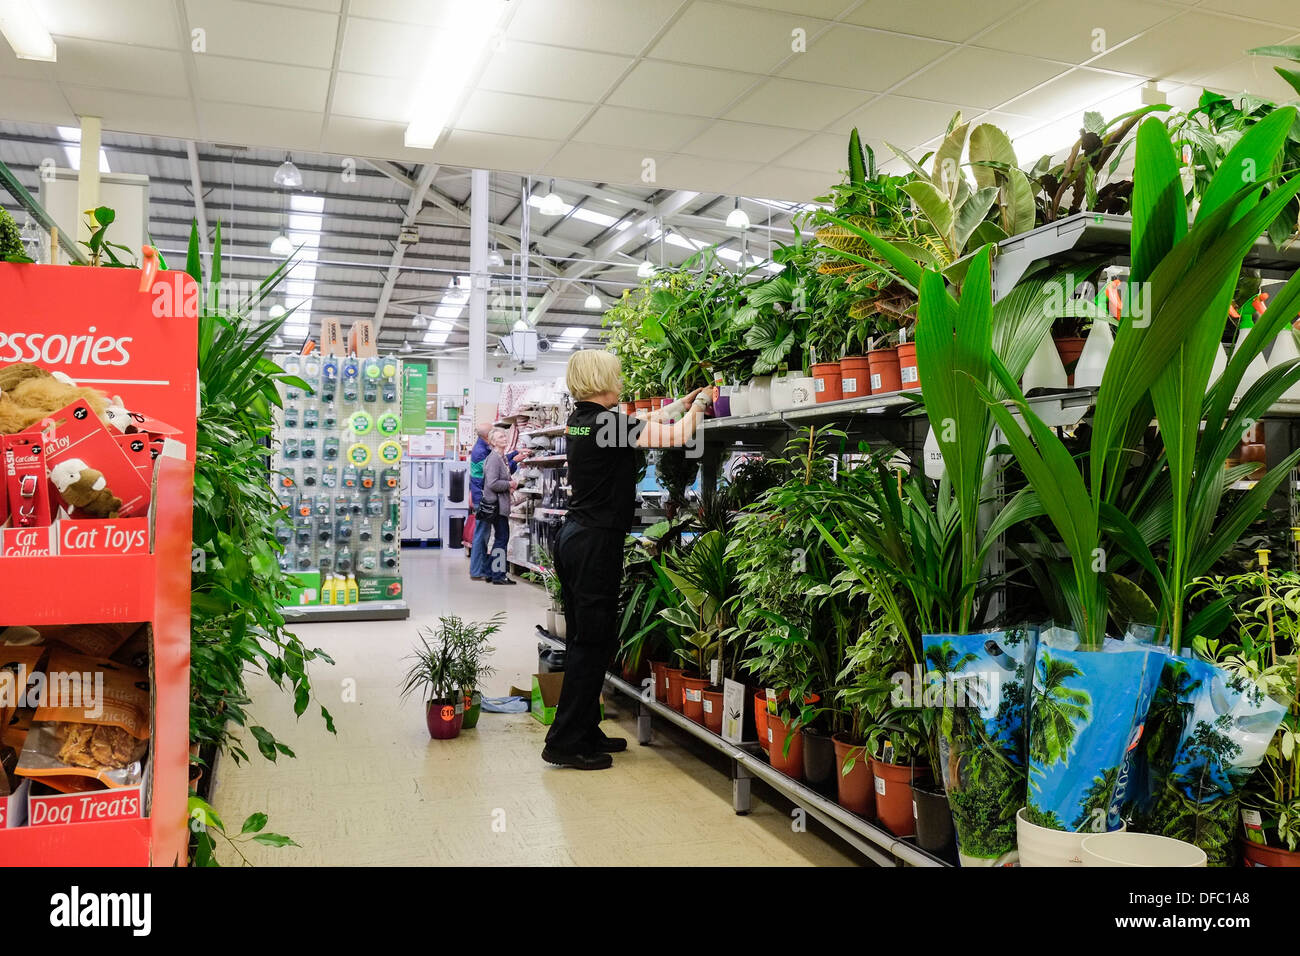 A member of staff working in a Homebase store. - Stock Image